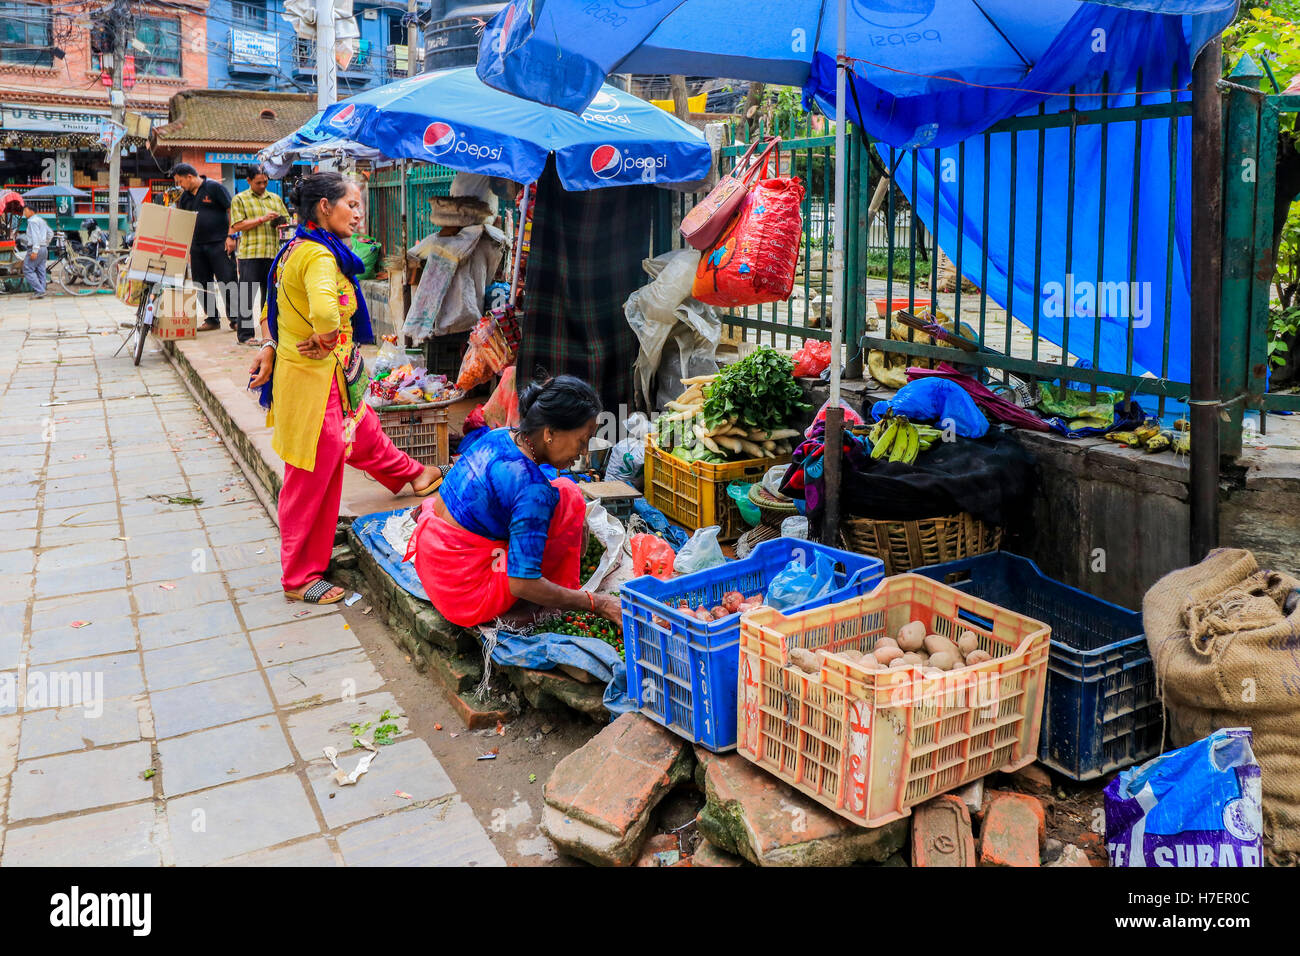 Trade In Nepal Stock Photos & Trade In Nepal Stock Images - Alamy